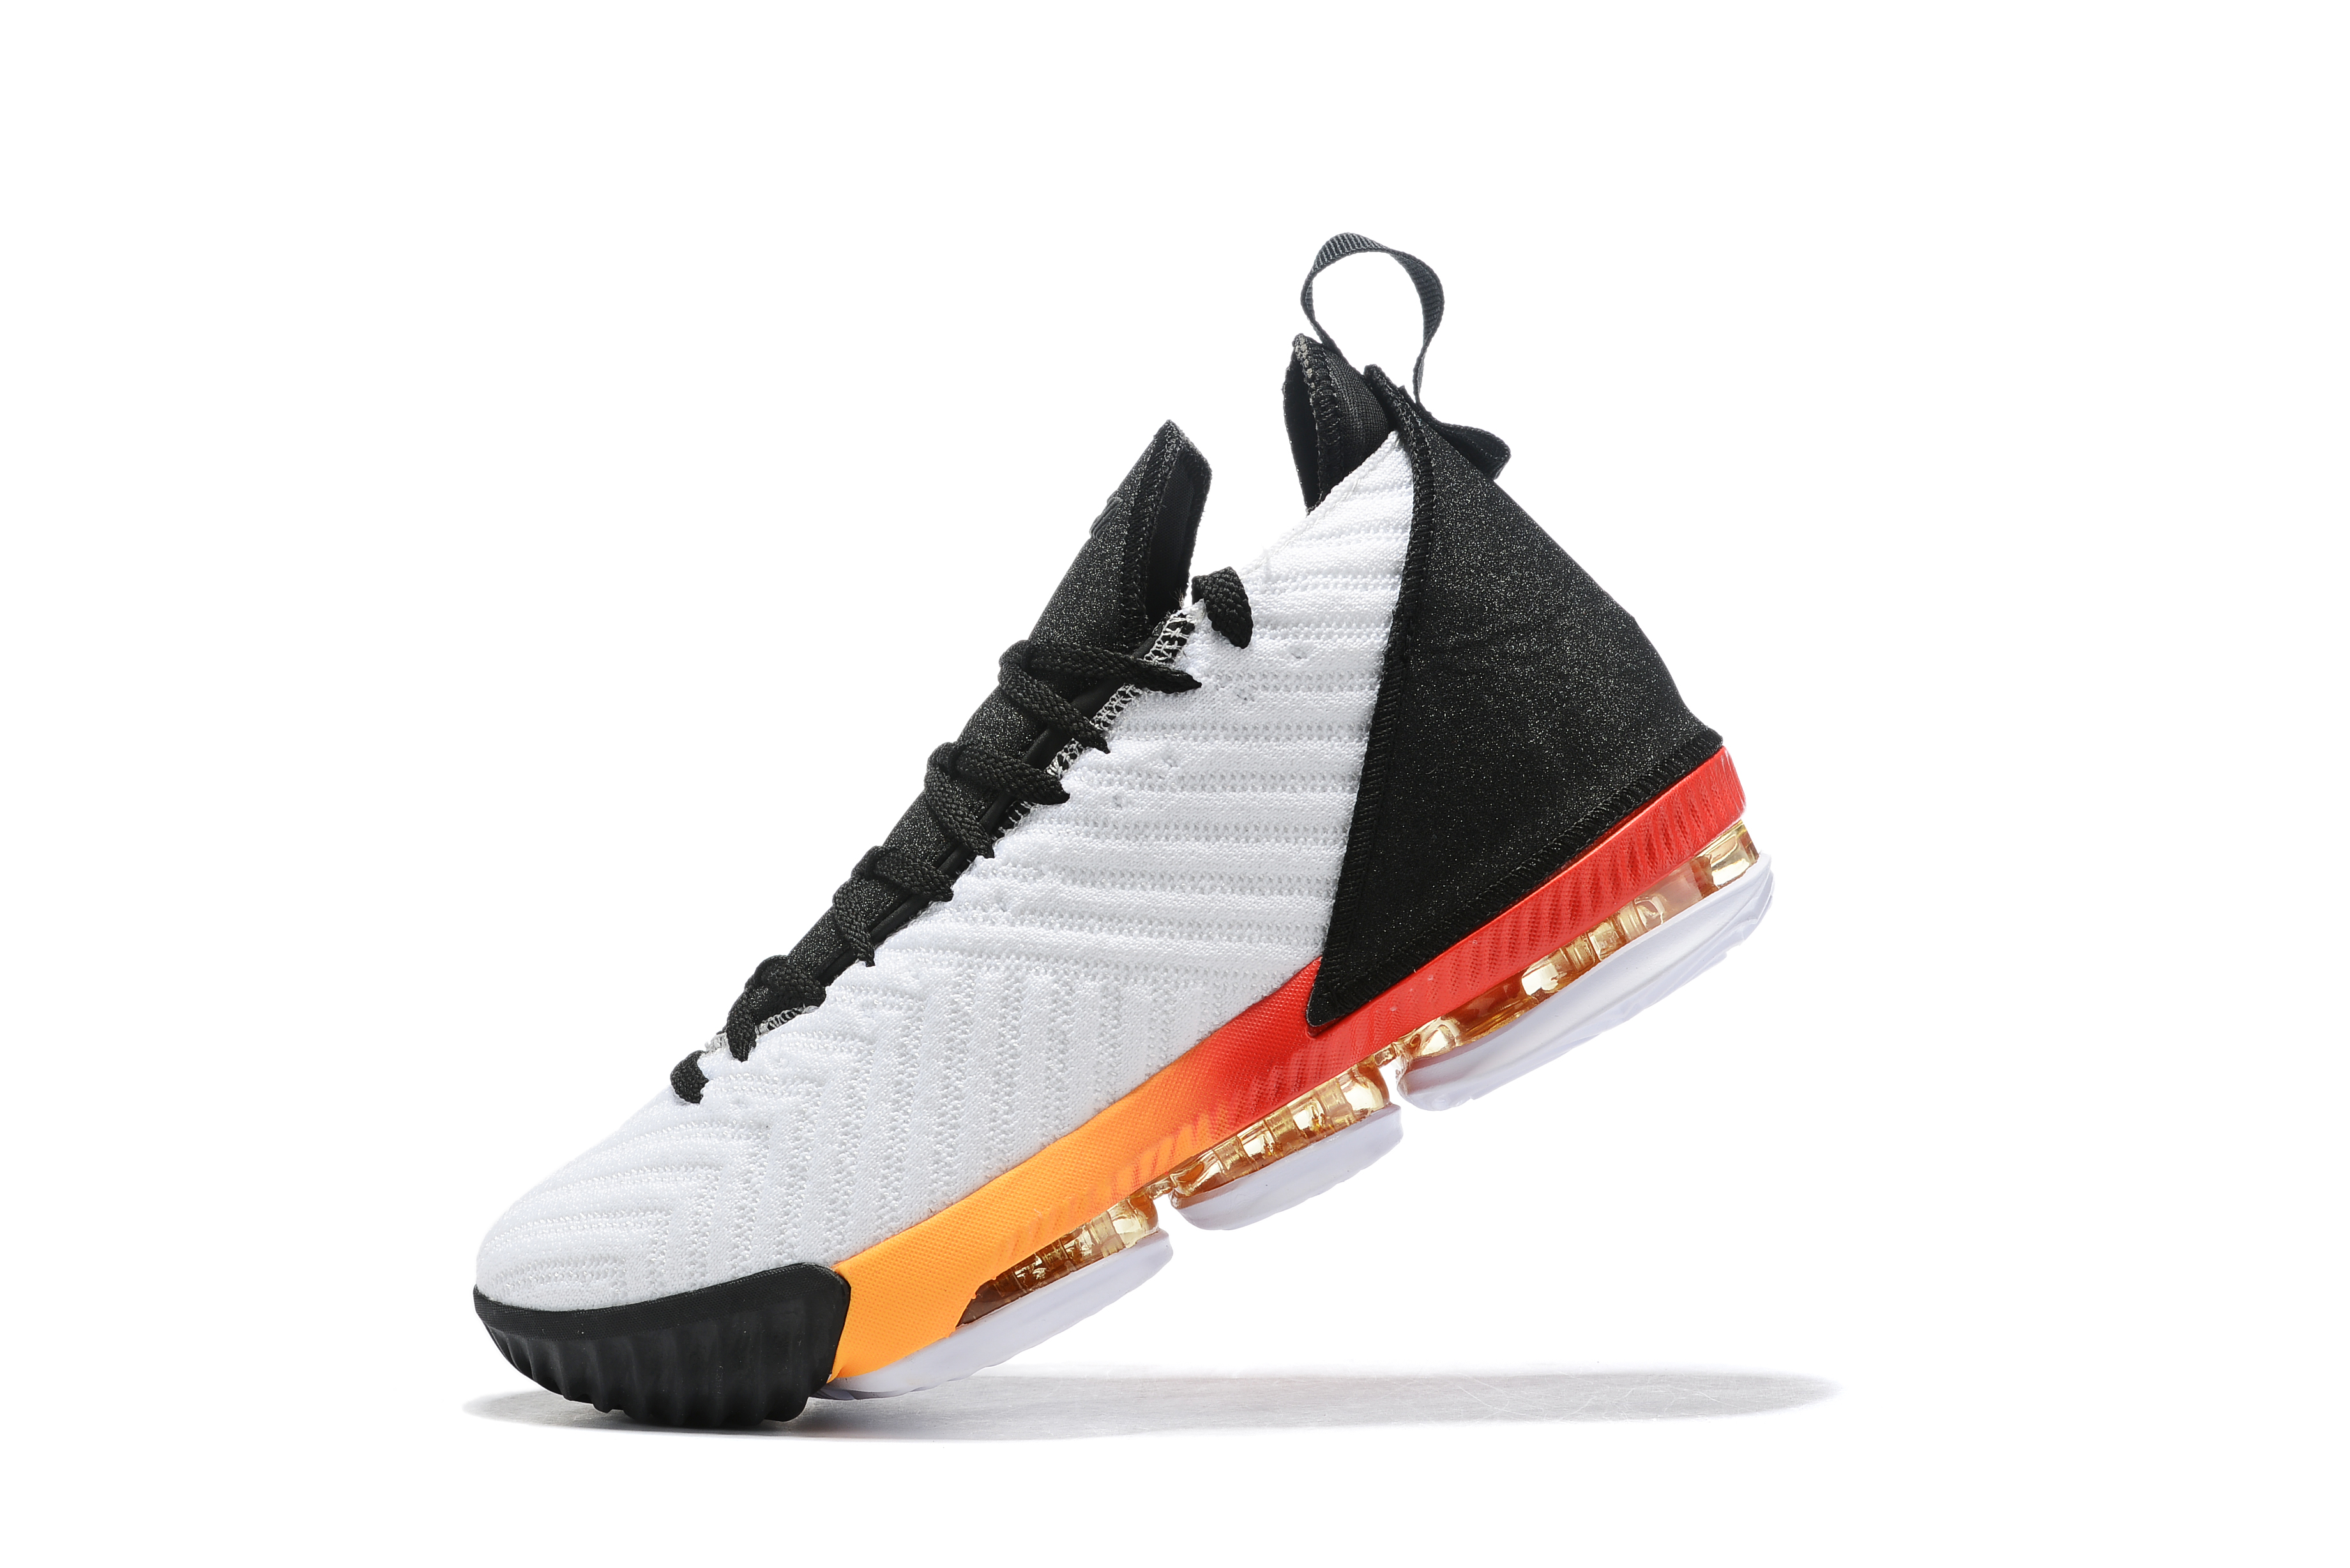 2019 Nike LeBron 16 White Black Orange Basketball Shoes